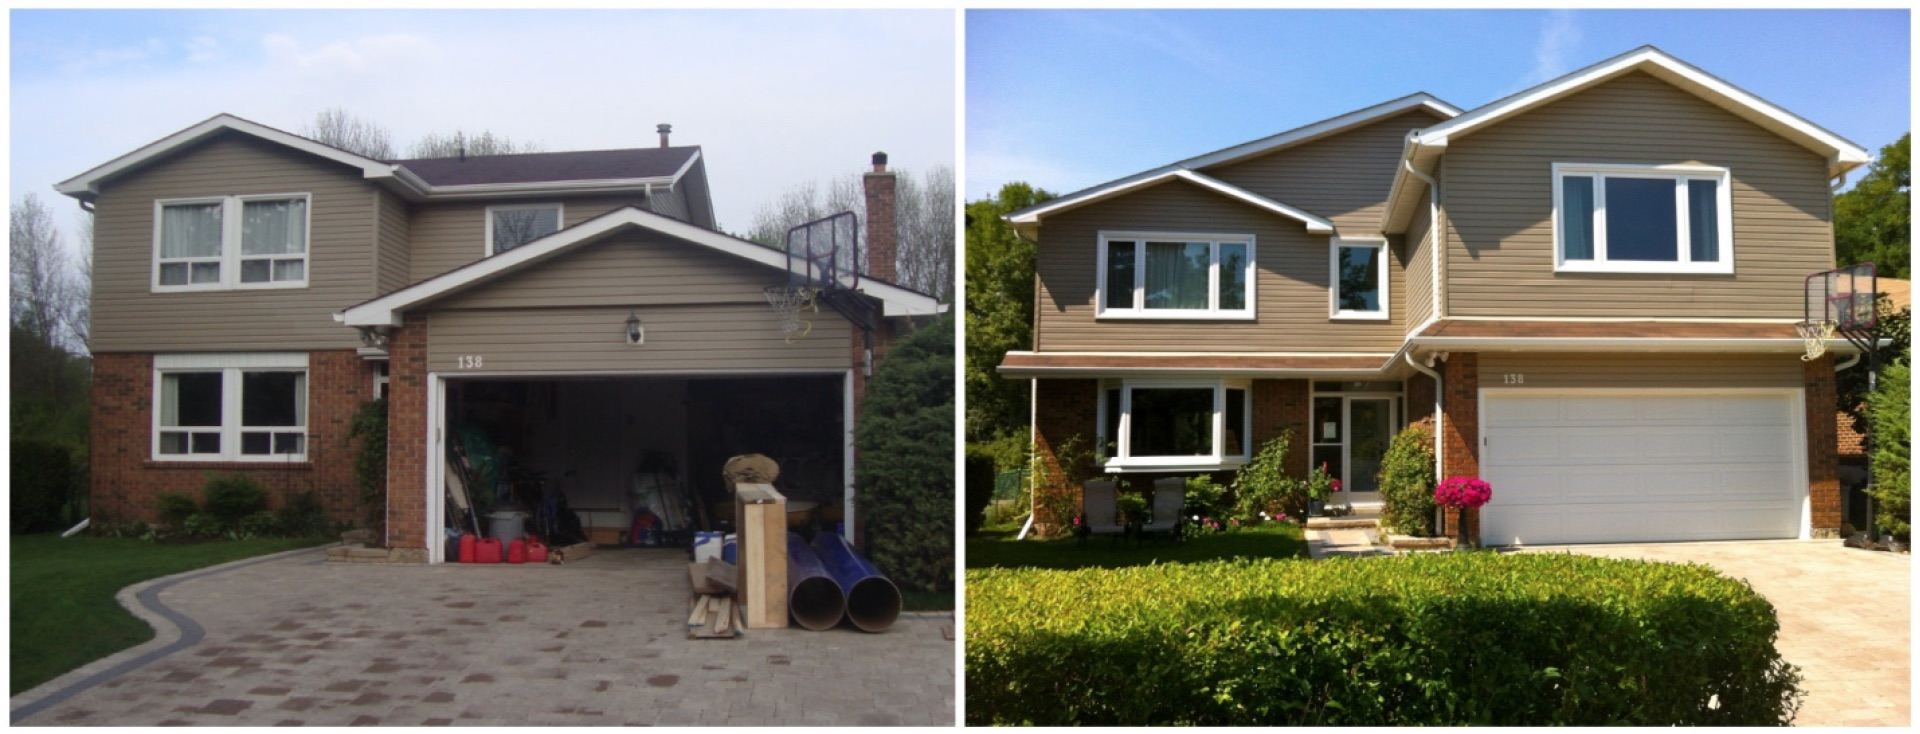 Before and after 2nd storey addition.jpg